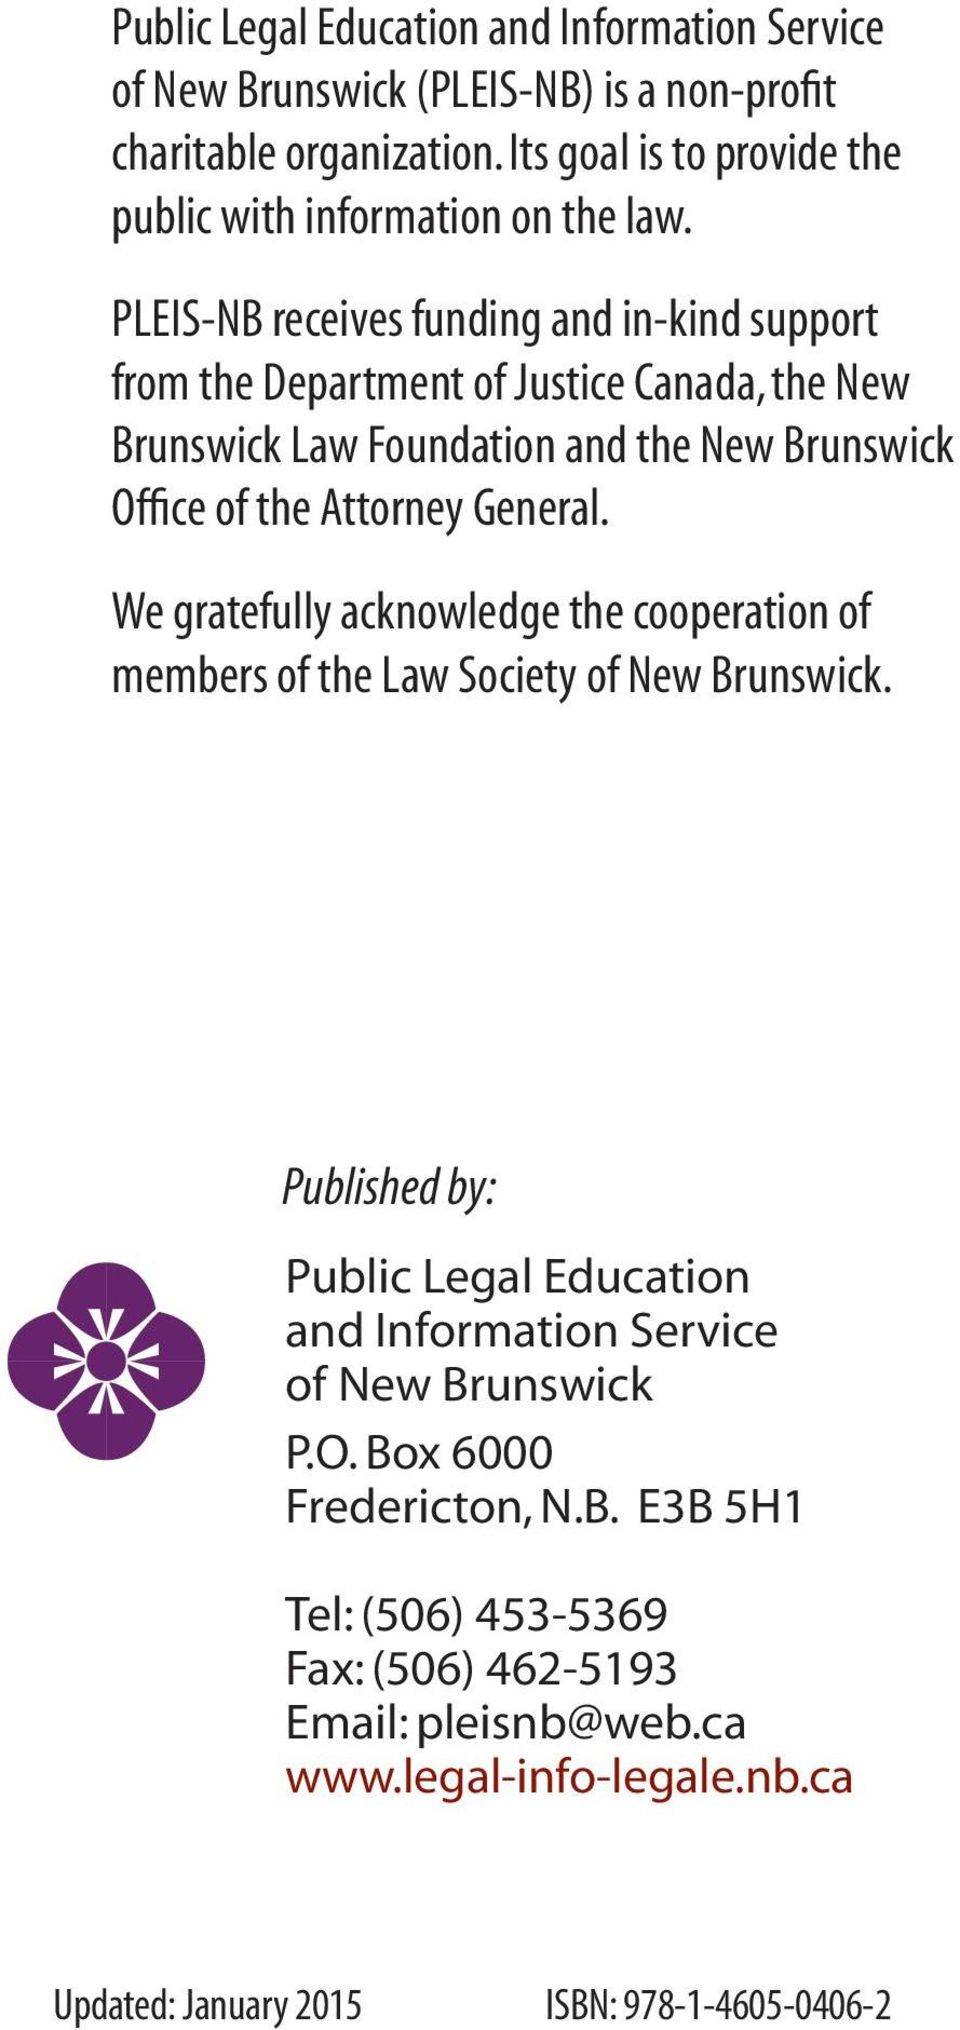 We gratefully acknowledge the cooperation of members of the Law Society of New Brunswick. Published by: Public Legal Education and Information Service of New Brunswick P.O.